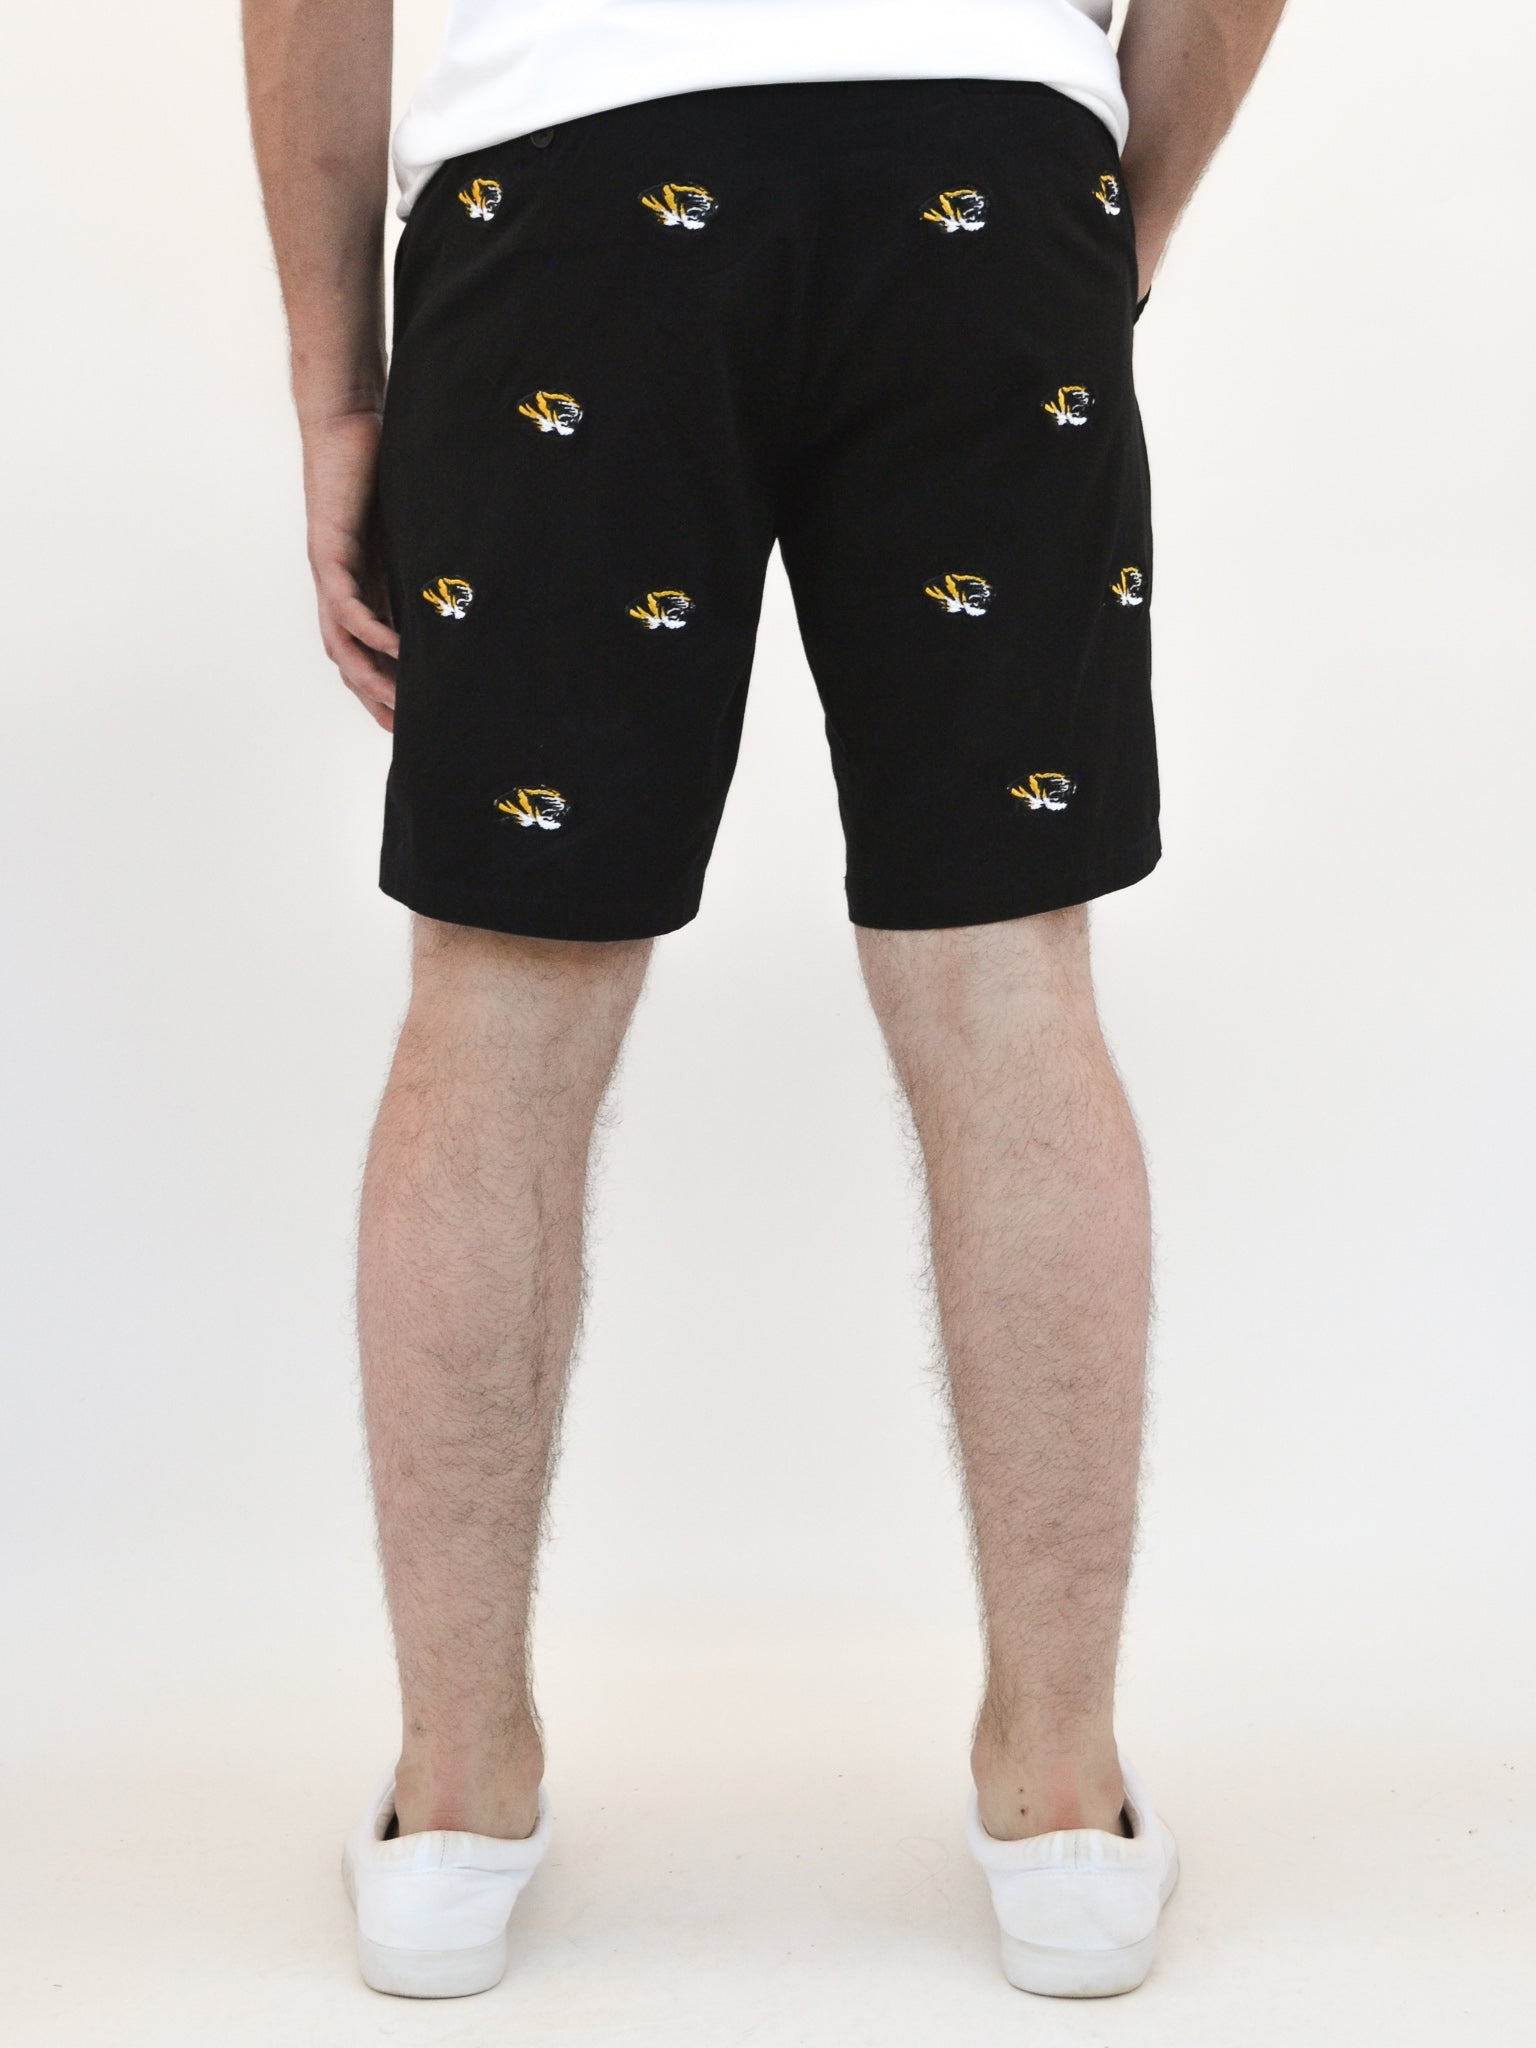 Missouri Black Shorts